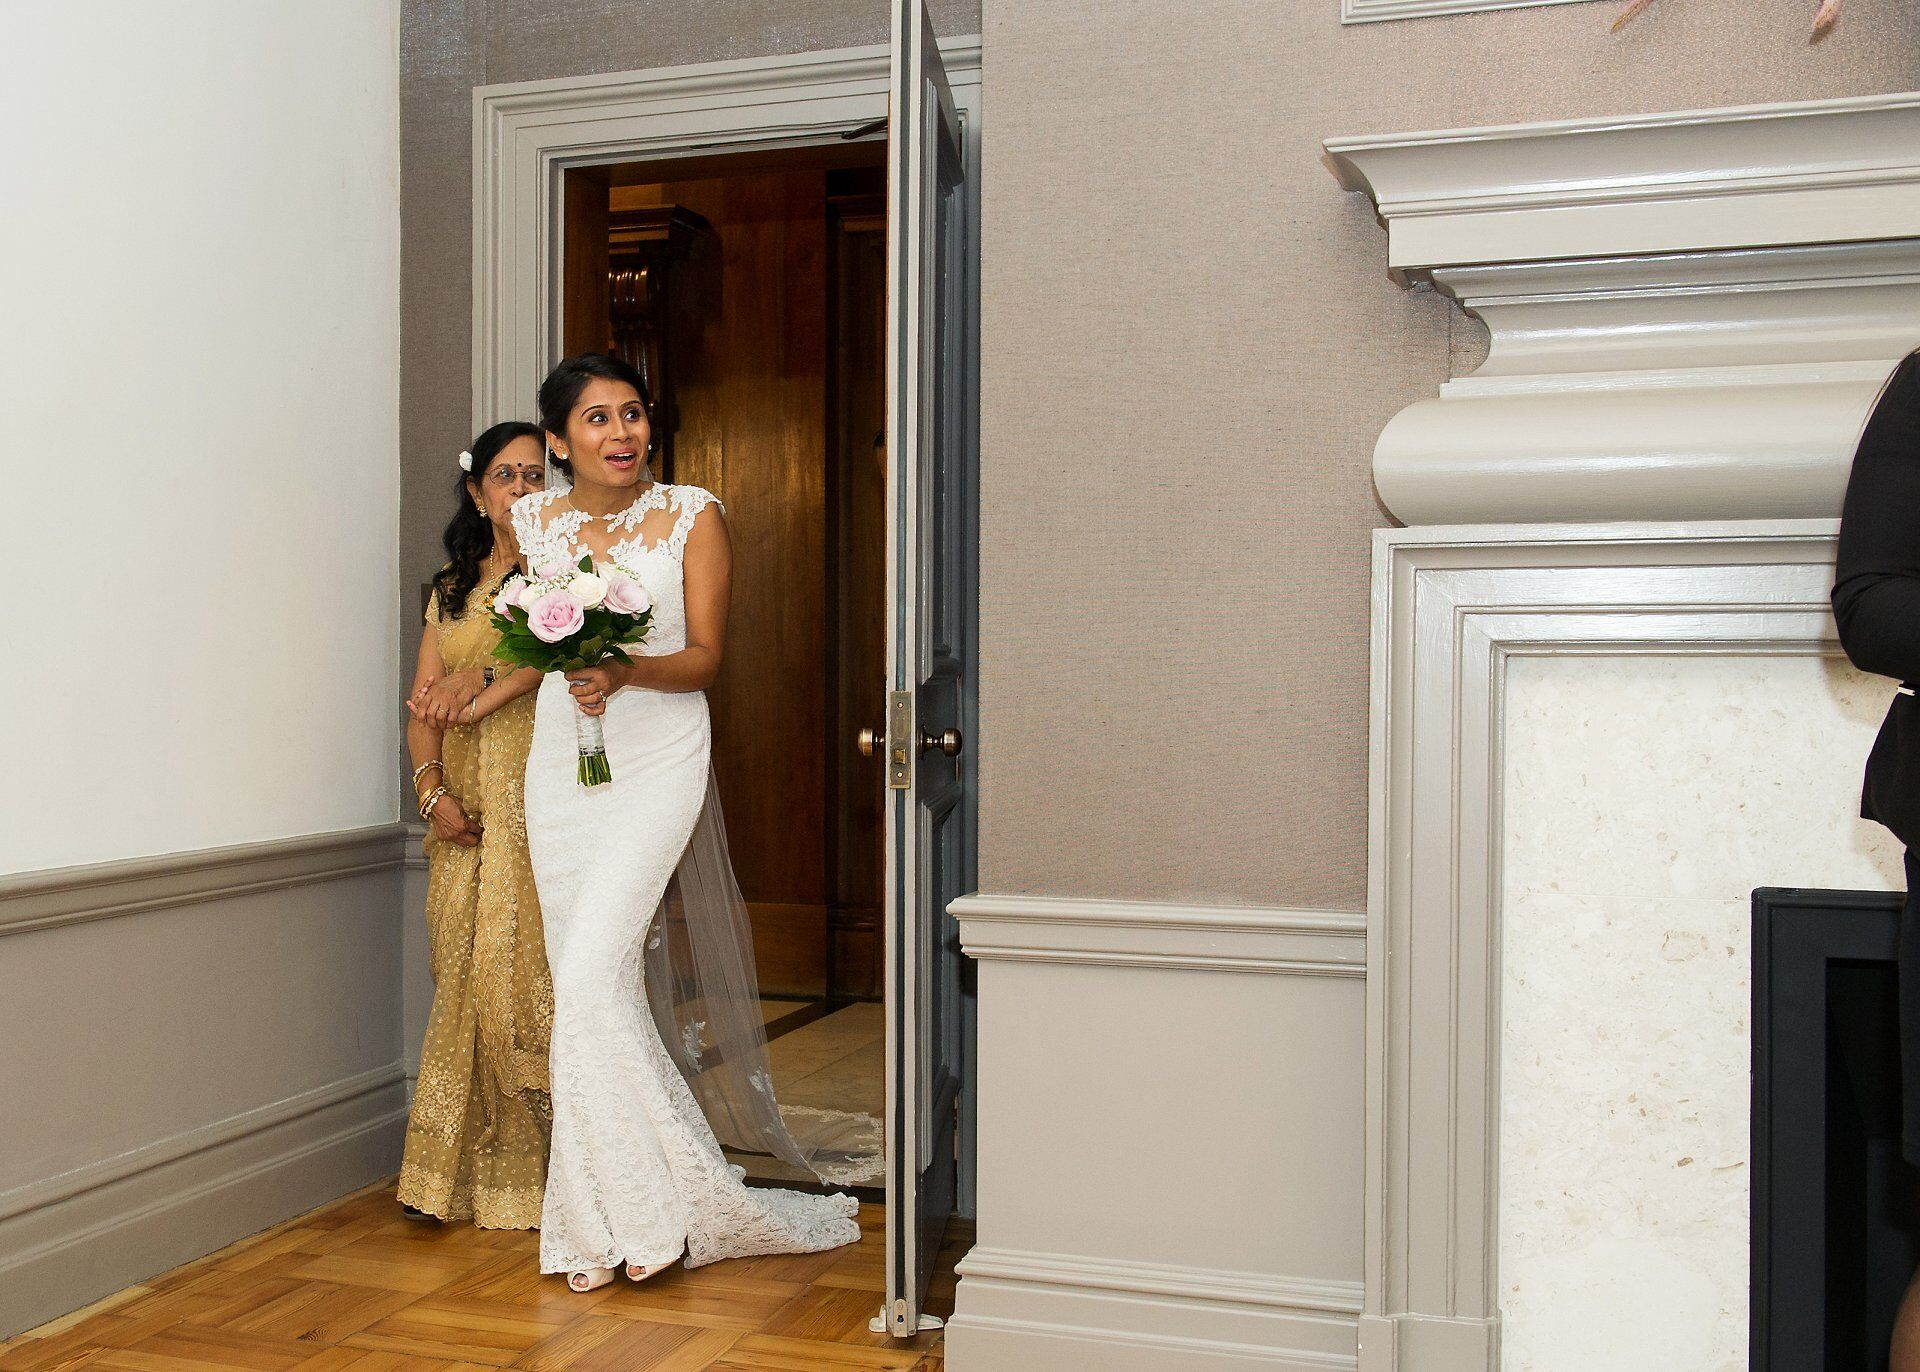 old marylebone town hall wedding photography a bride sees groom for first time as she enters mayfair room